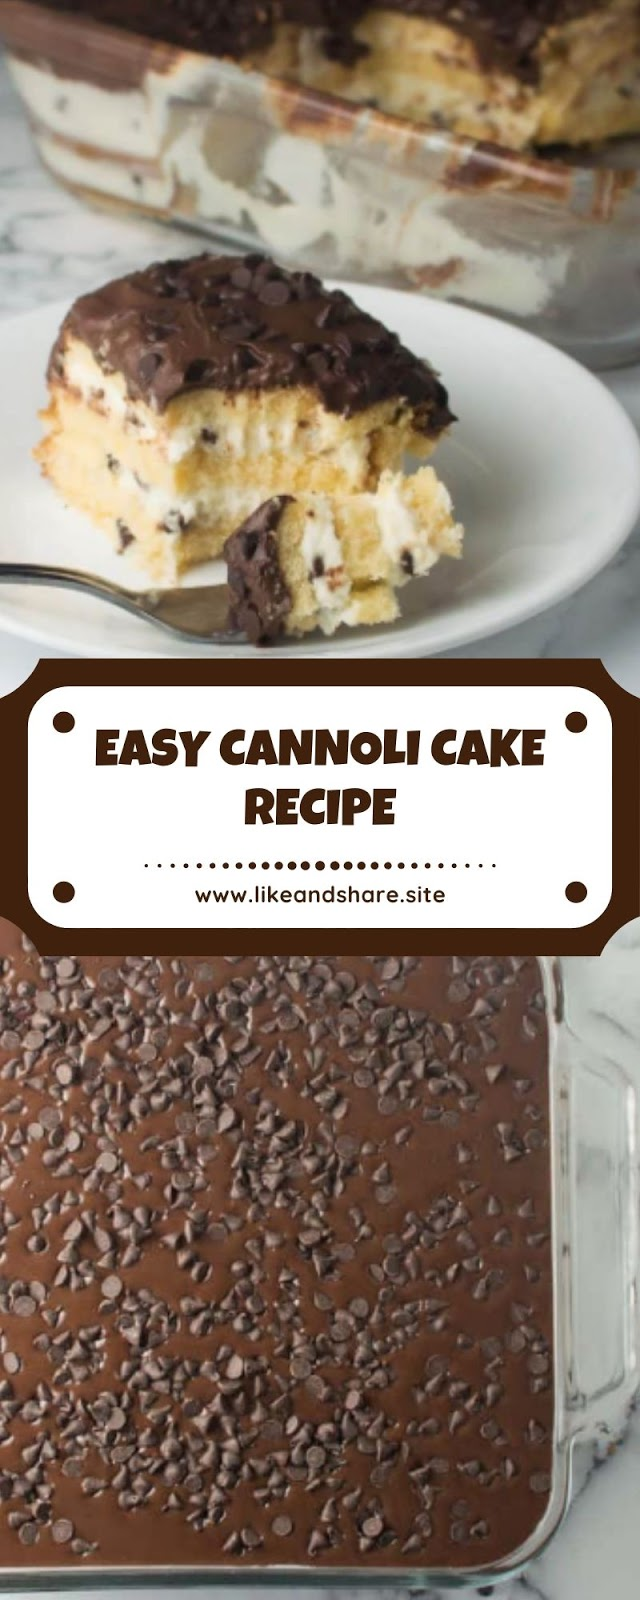 EASY CANNOLI CAKE RECIPE